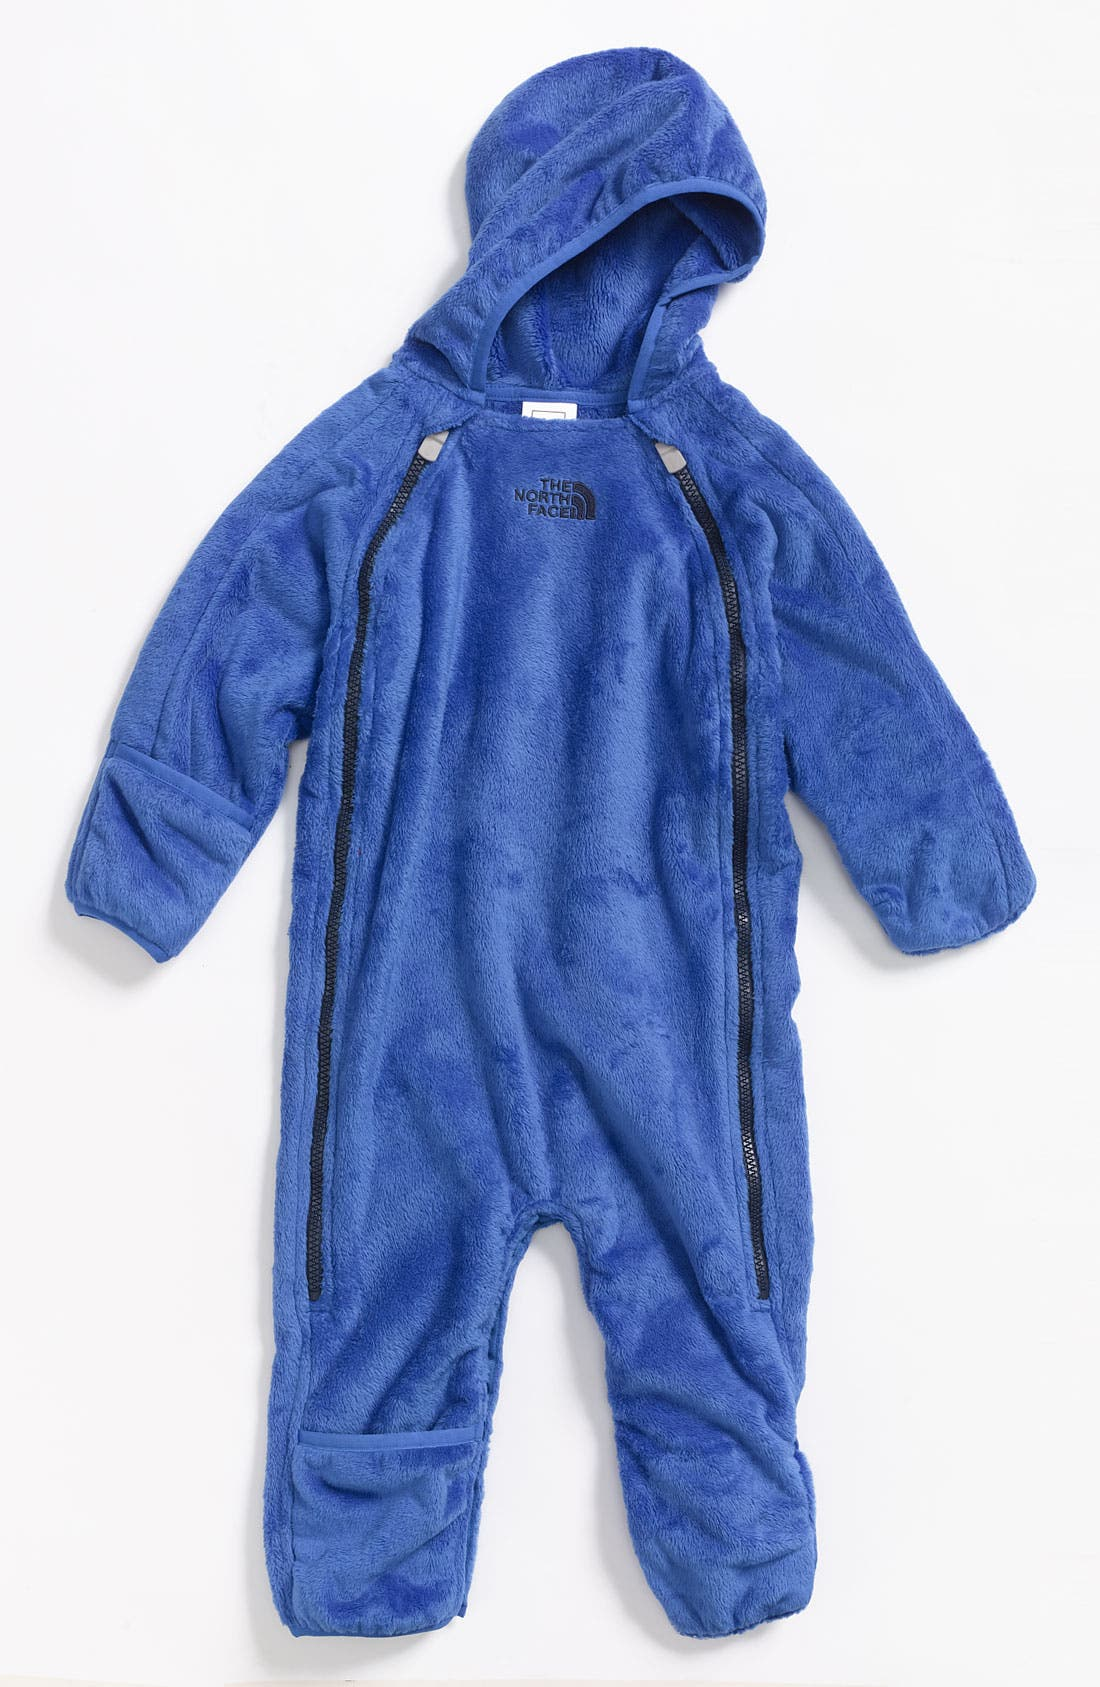 Alternate Image 1 Selected - The North Face 'Buttery' Fleece Bunting (Infant) (Nordstrom Exclusive)